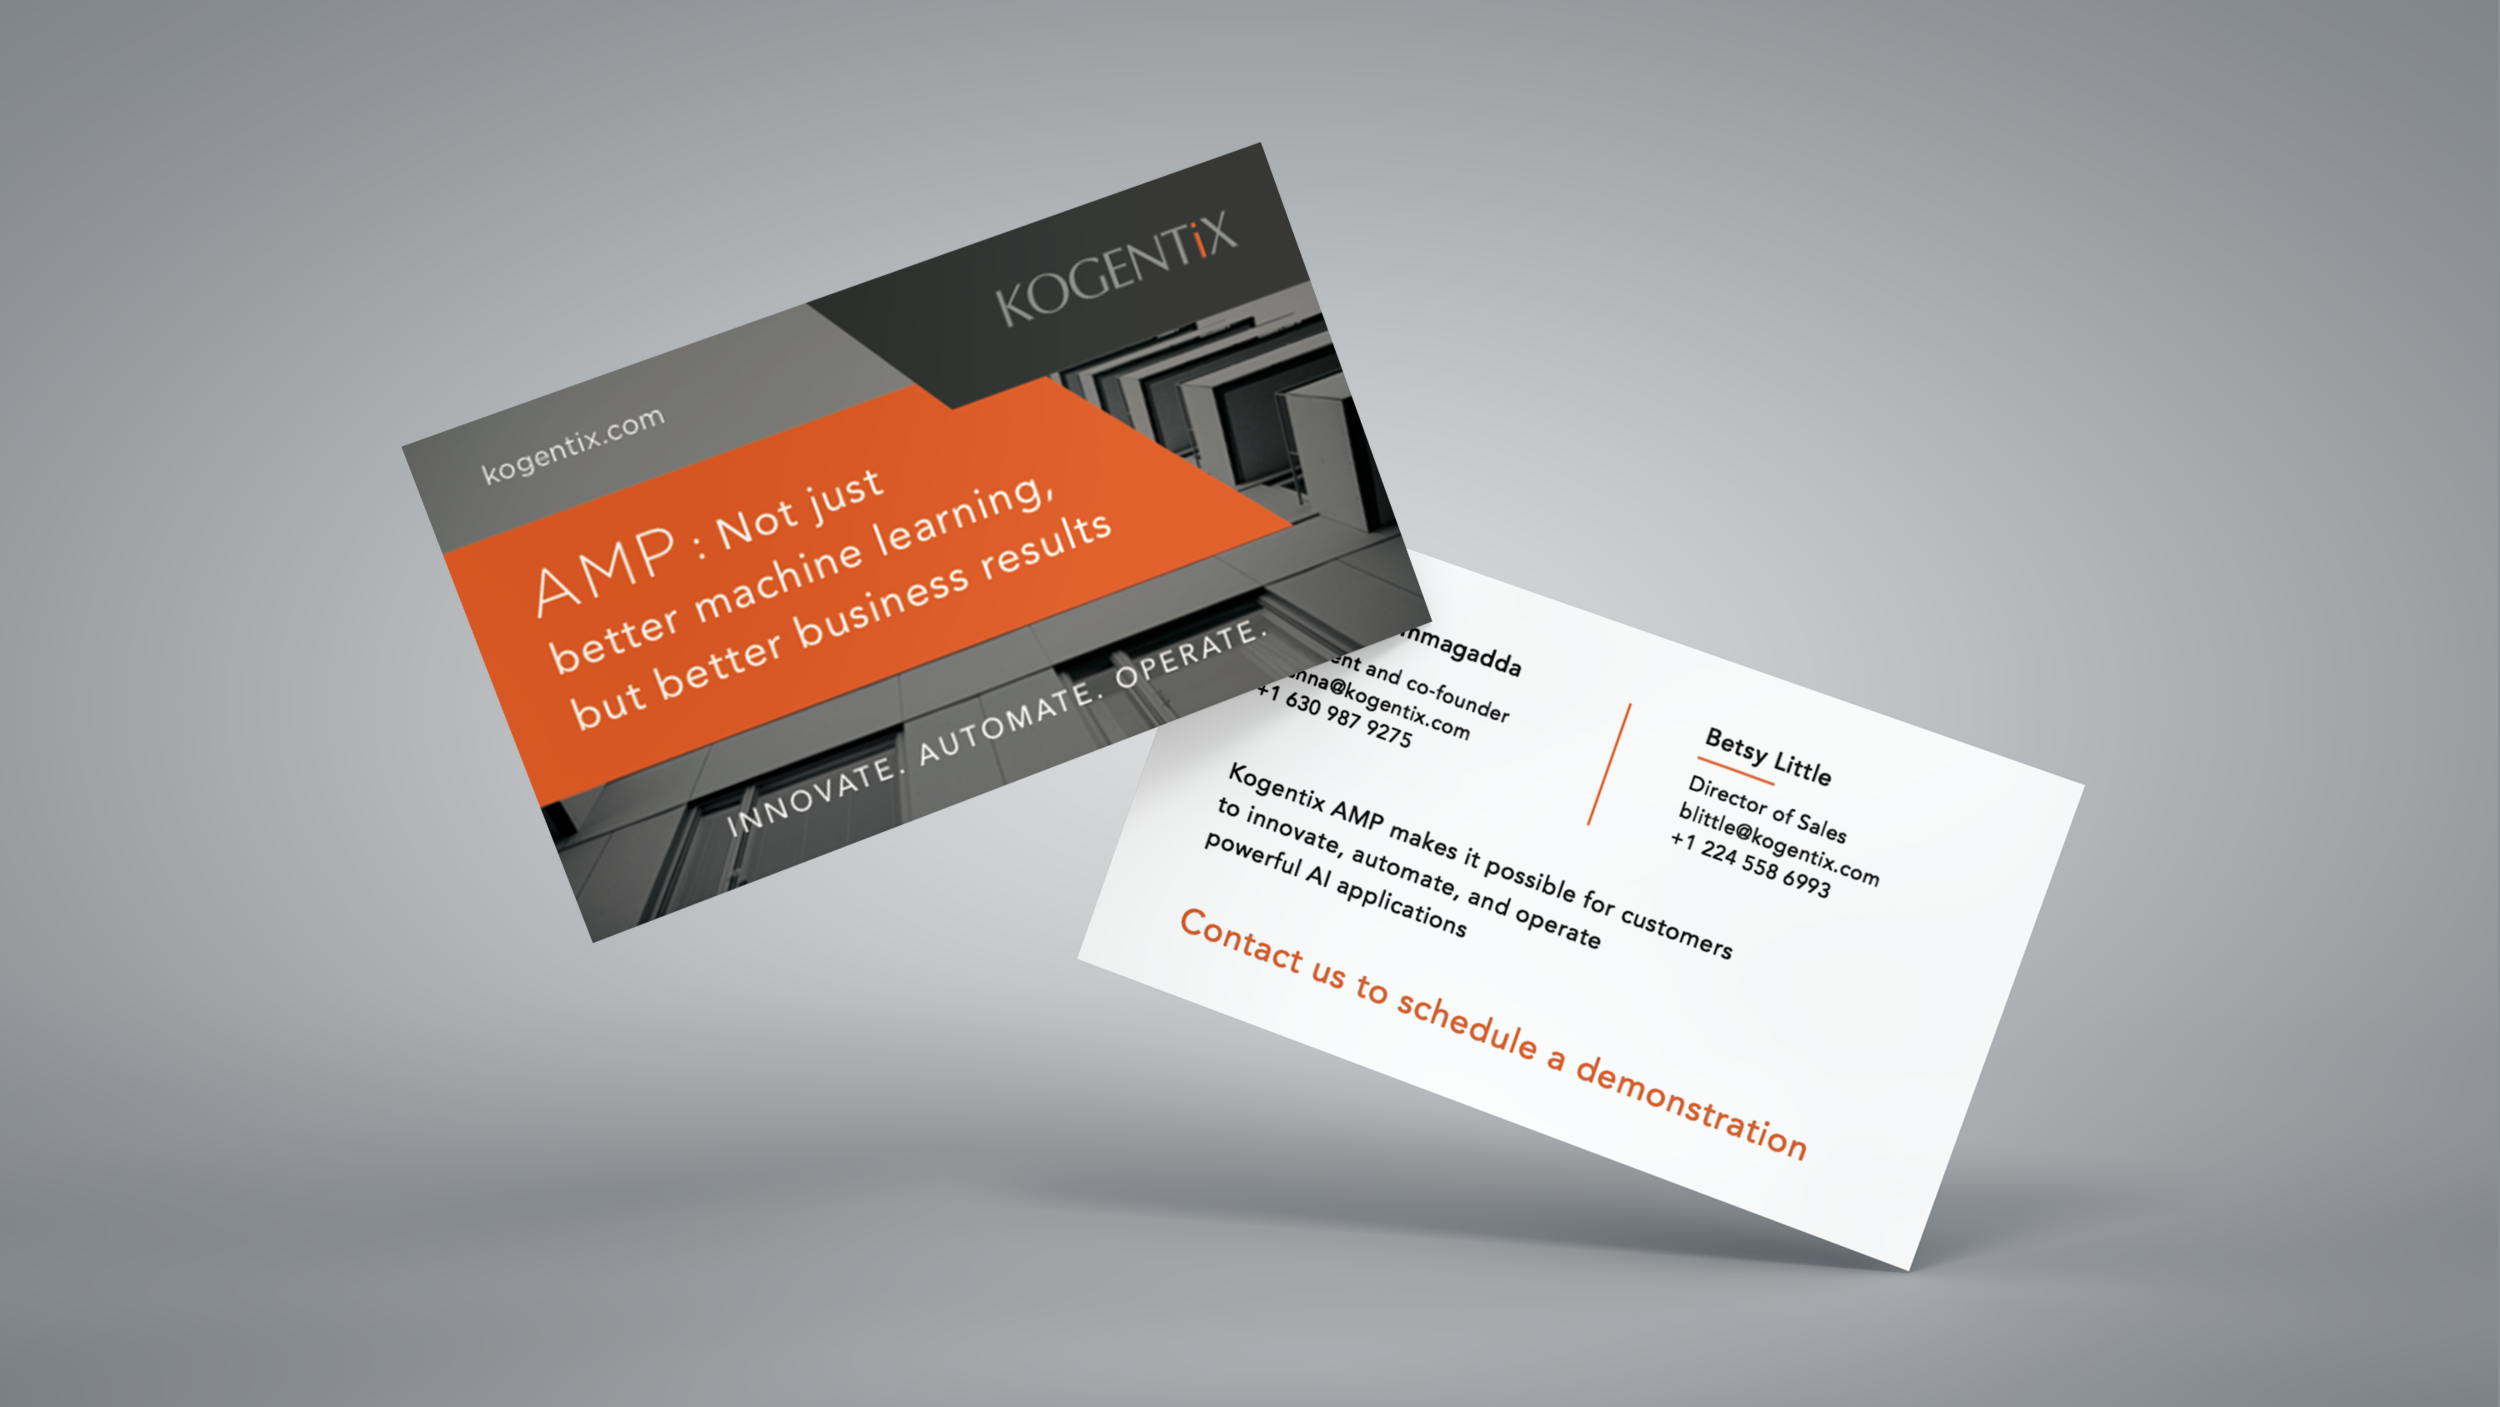 kogentix business card.png